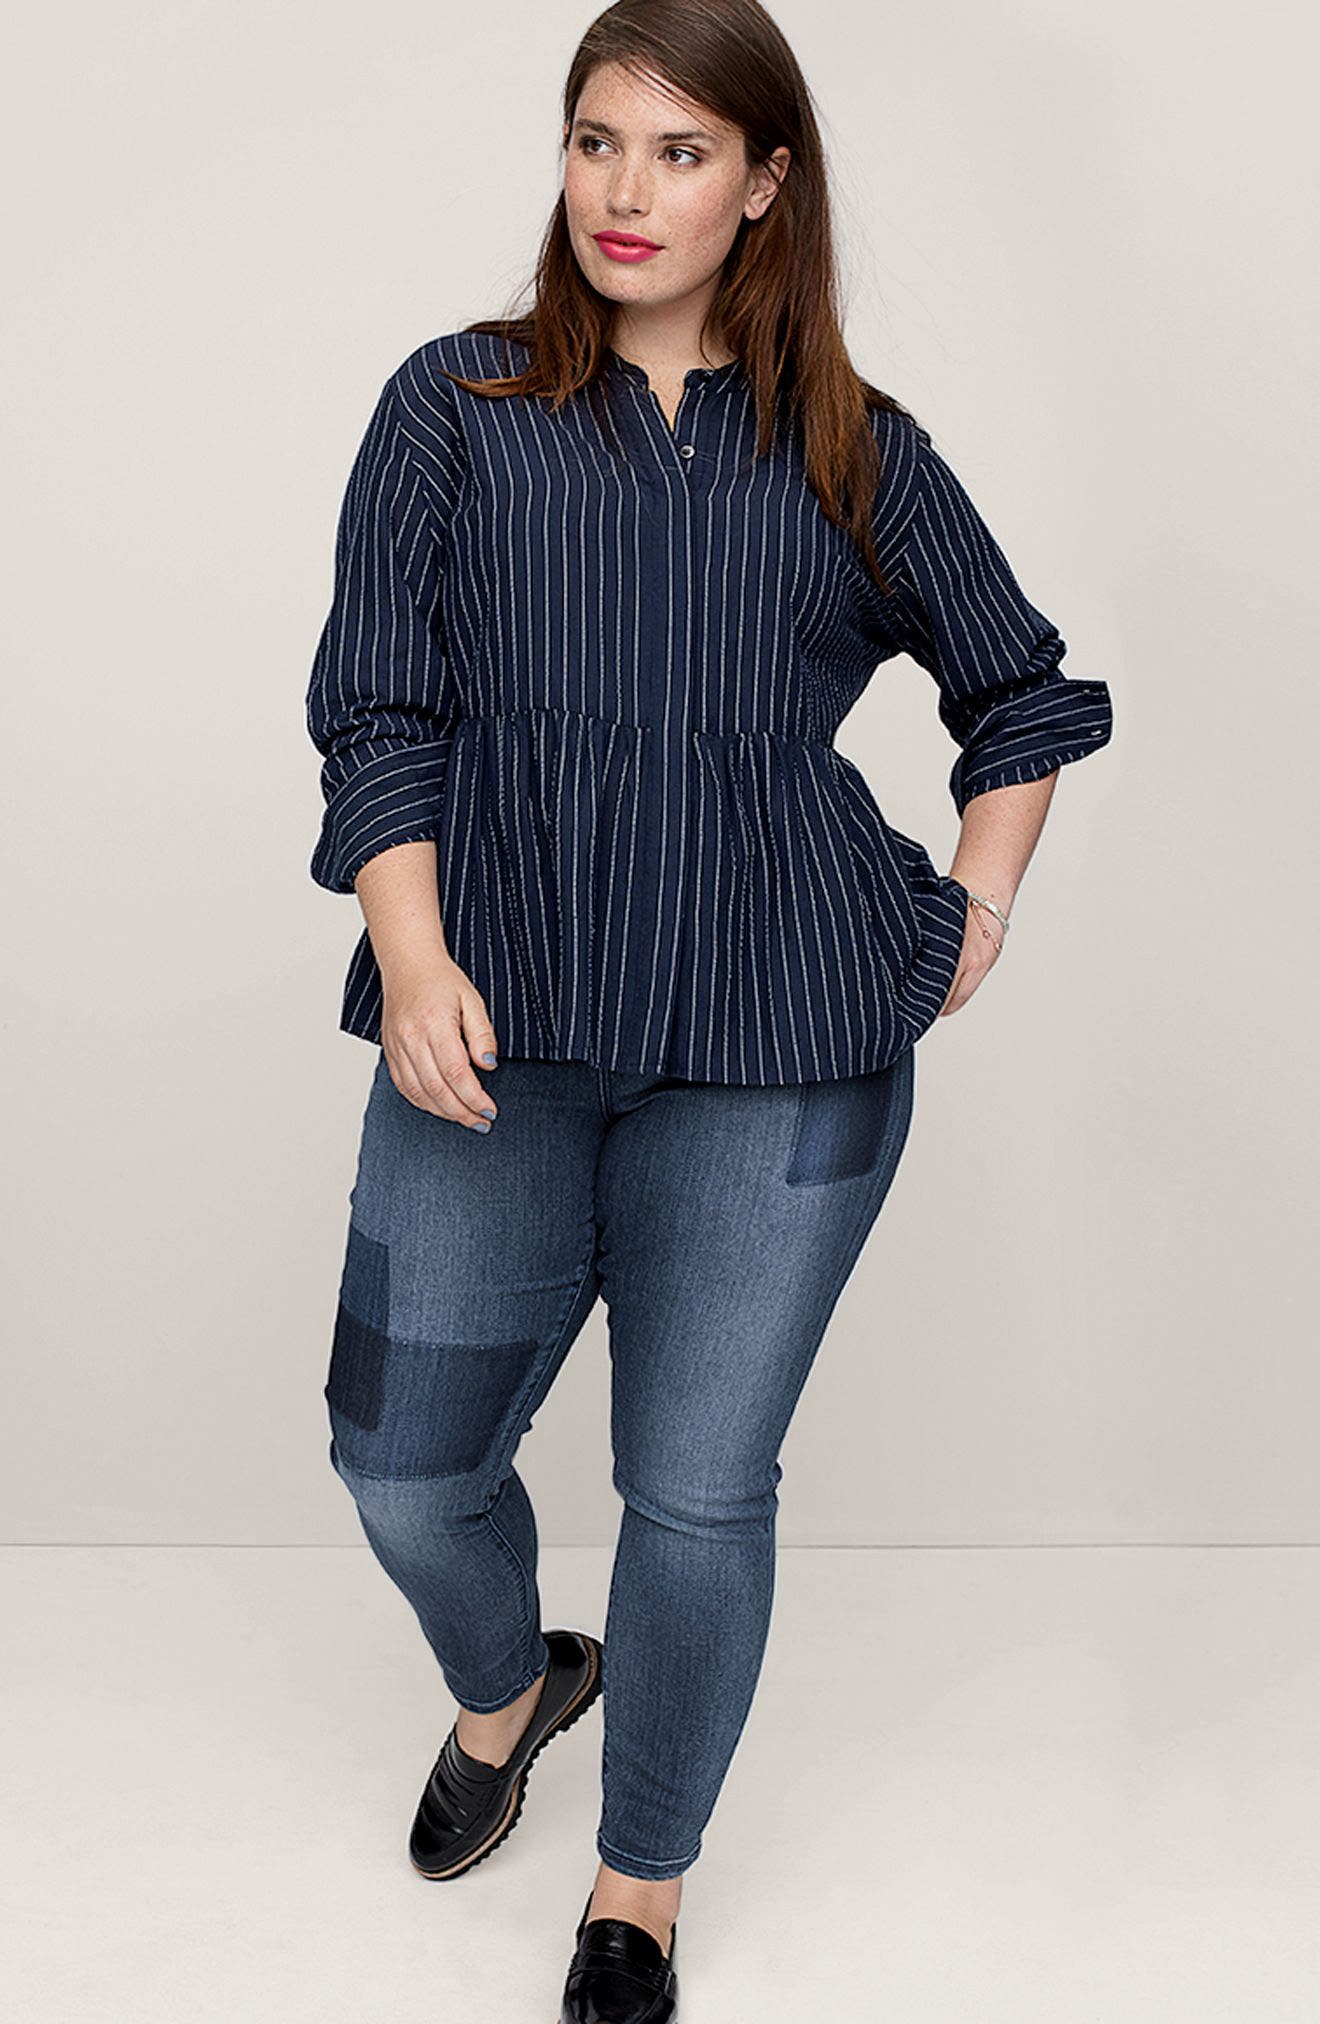 Caslon® Blouse & Jeans Outfit with Accessories (Plus Size)